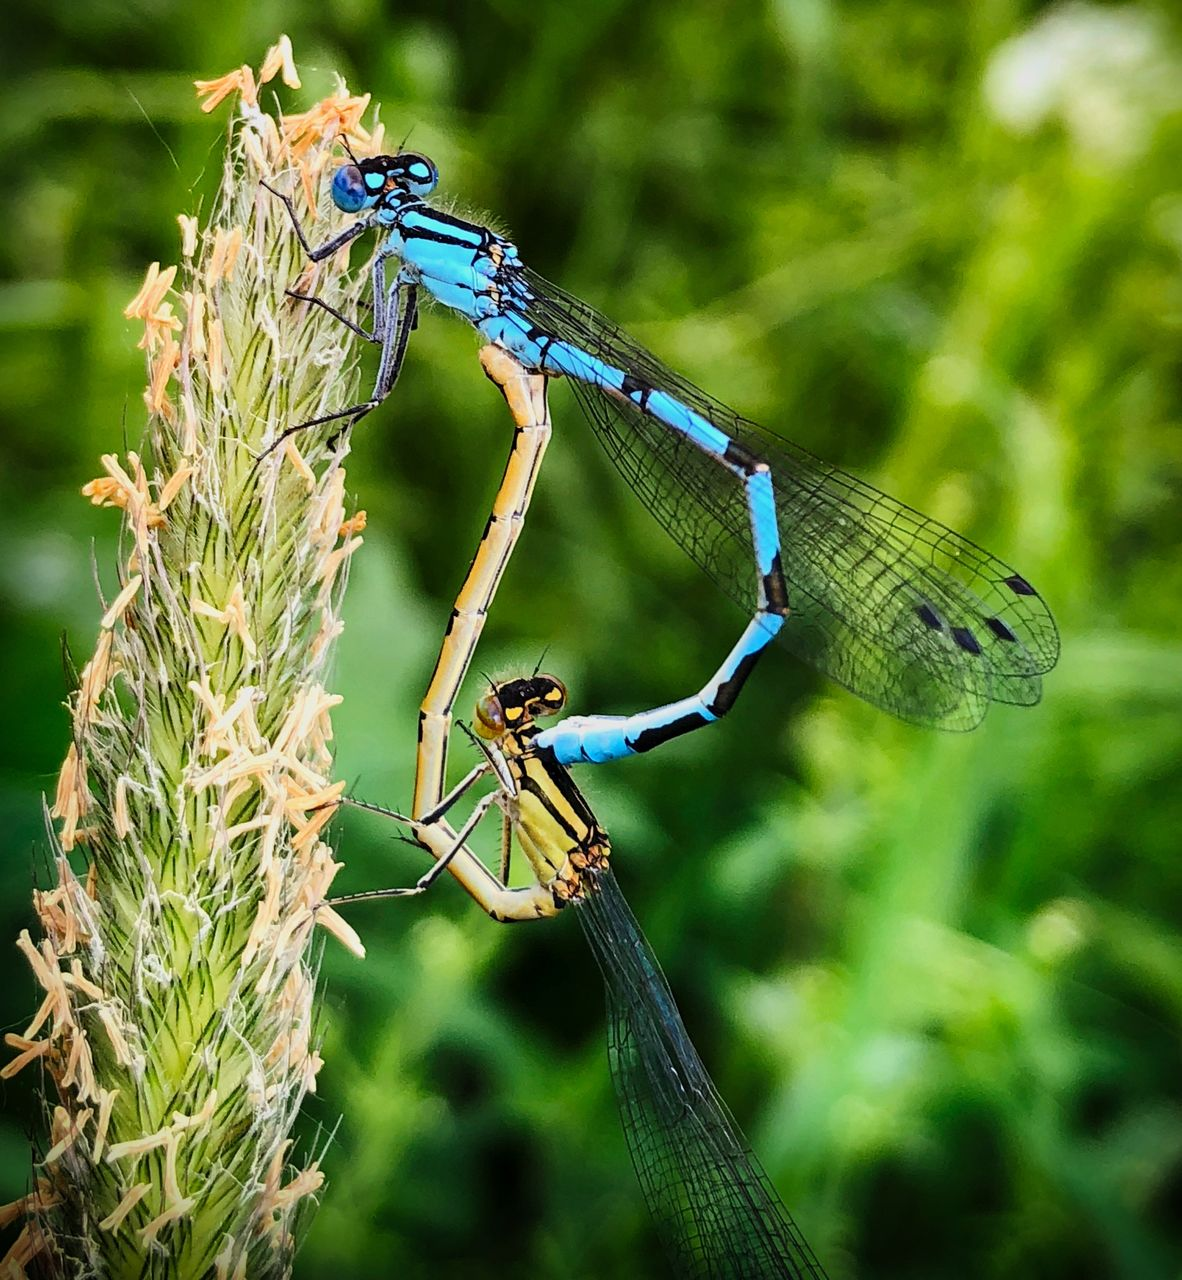 animals in the wild, animal wildlife, insect, invertebrate, animal themes, animal, plant, focus on foreground, day, close-up, one animal, nature, dragonfly, animal wing, damselfly, no people, outdoors